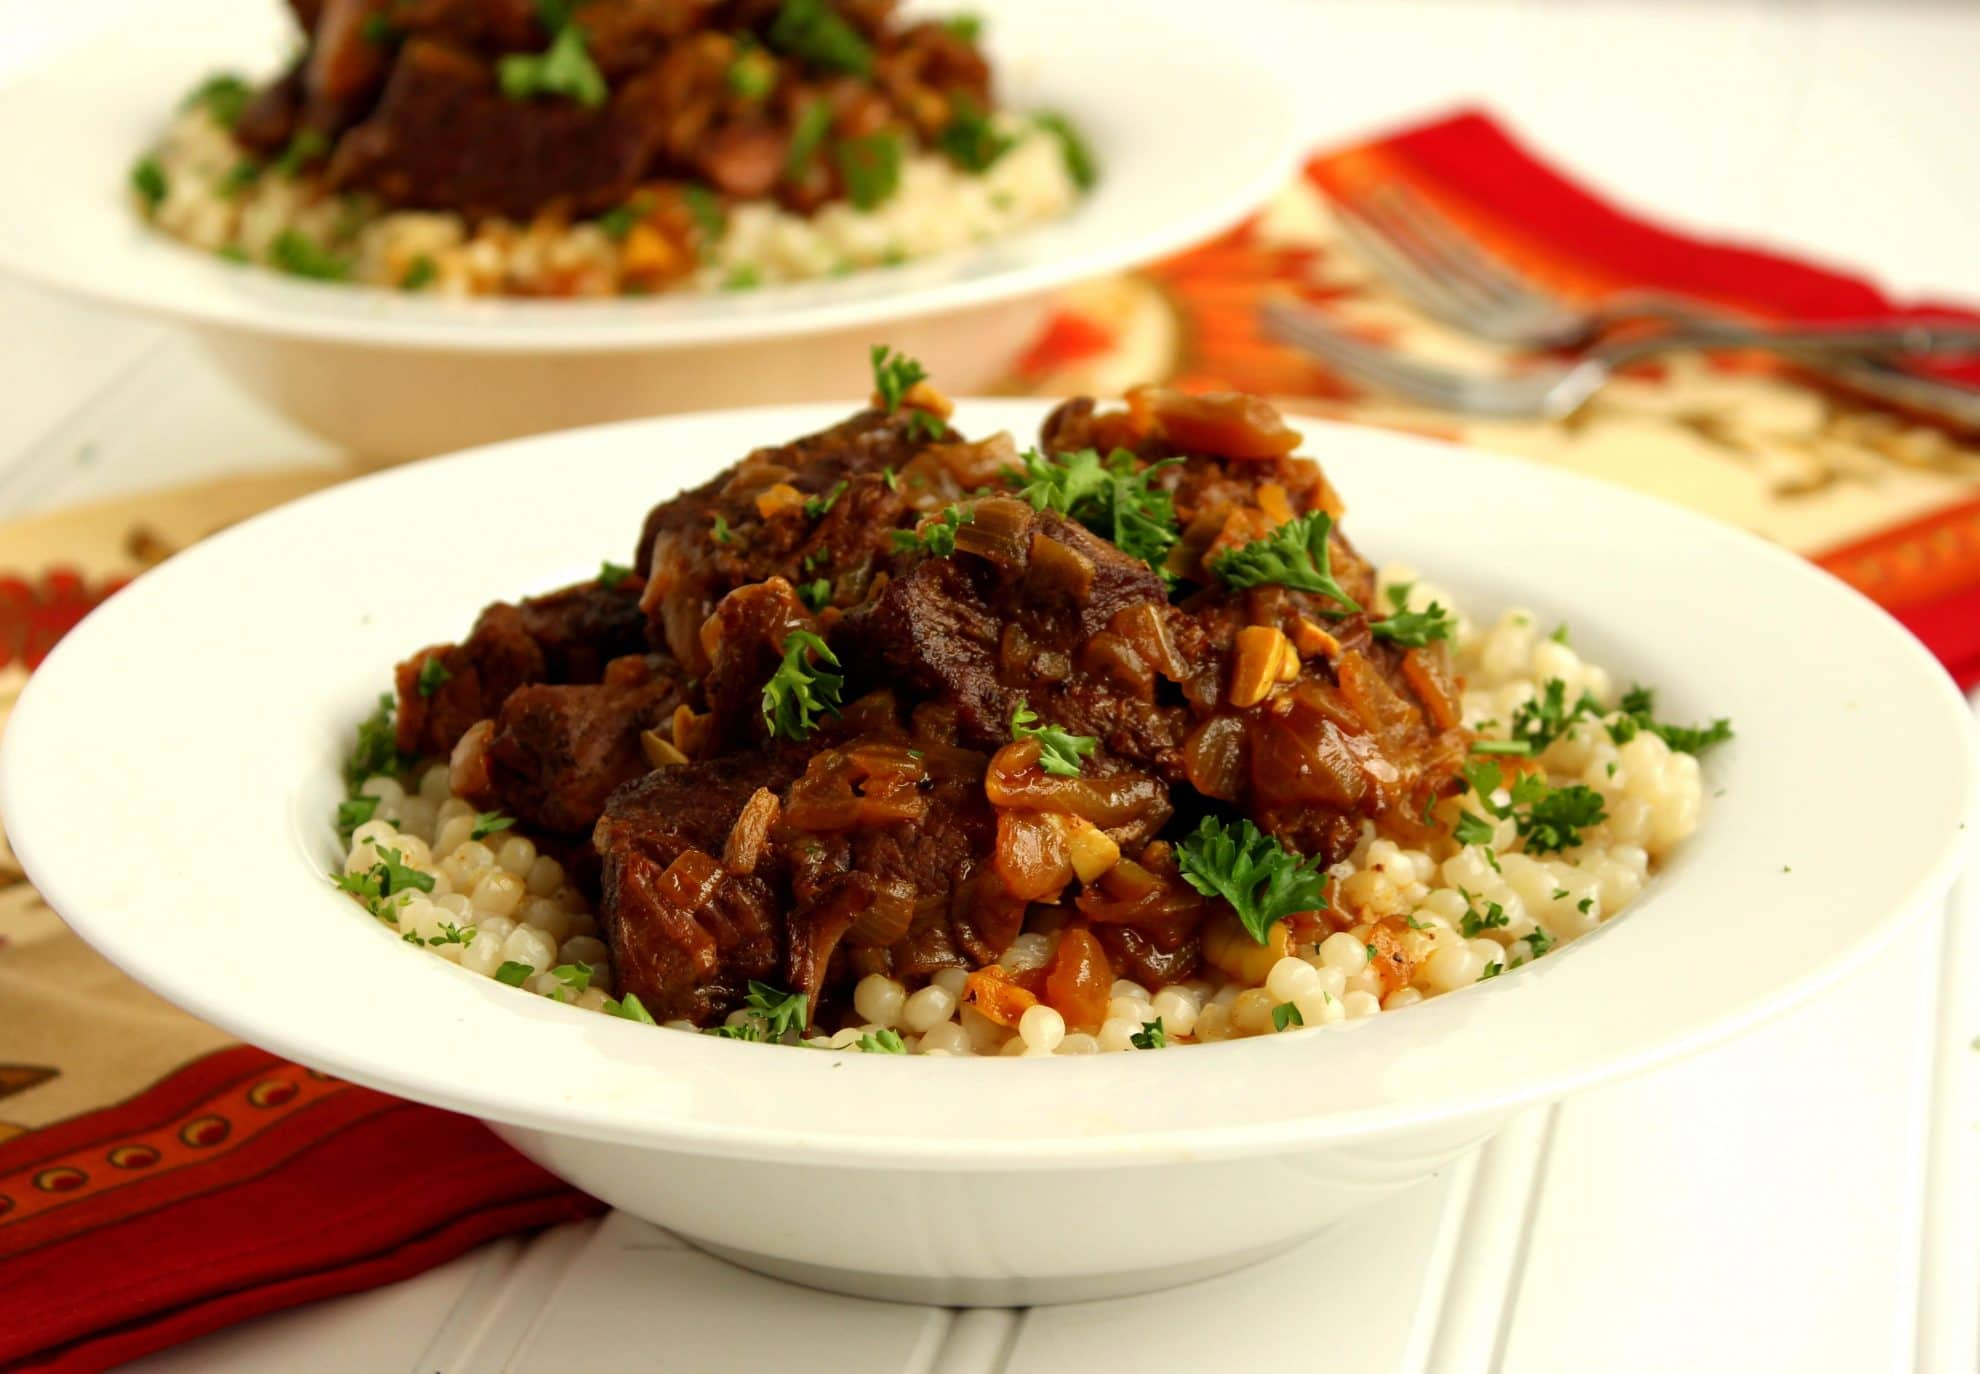 Slow Cooker Thai Red Curry Beef - The Suburban Soapbox